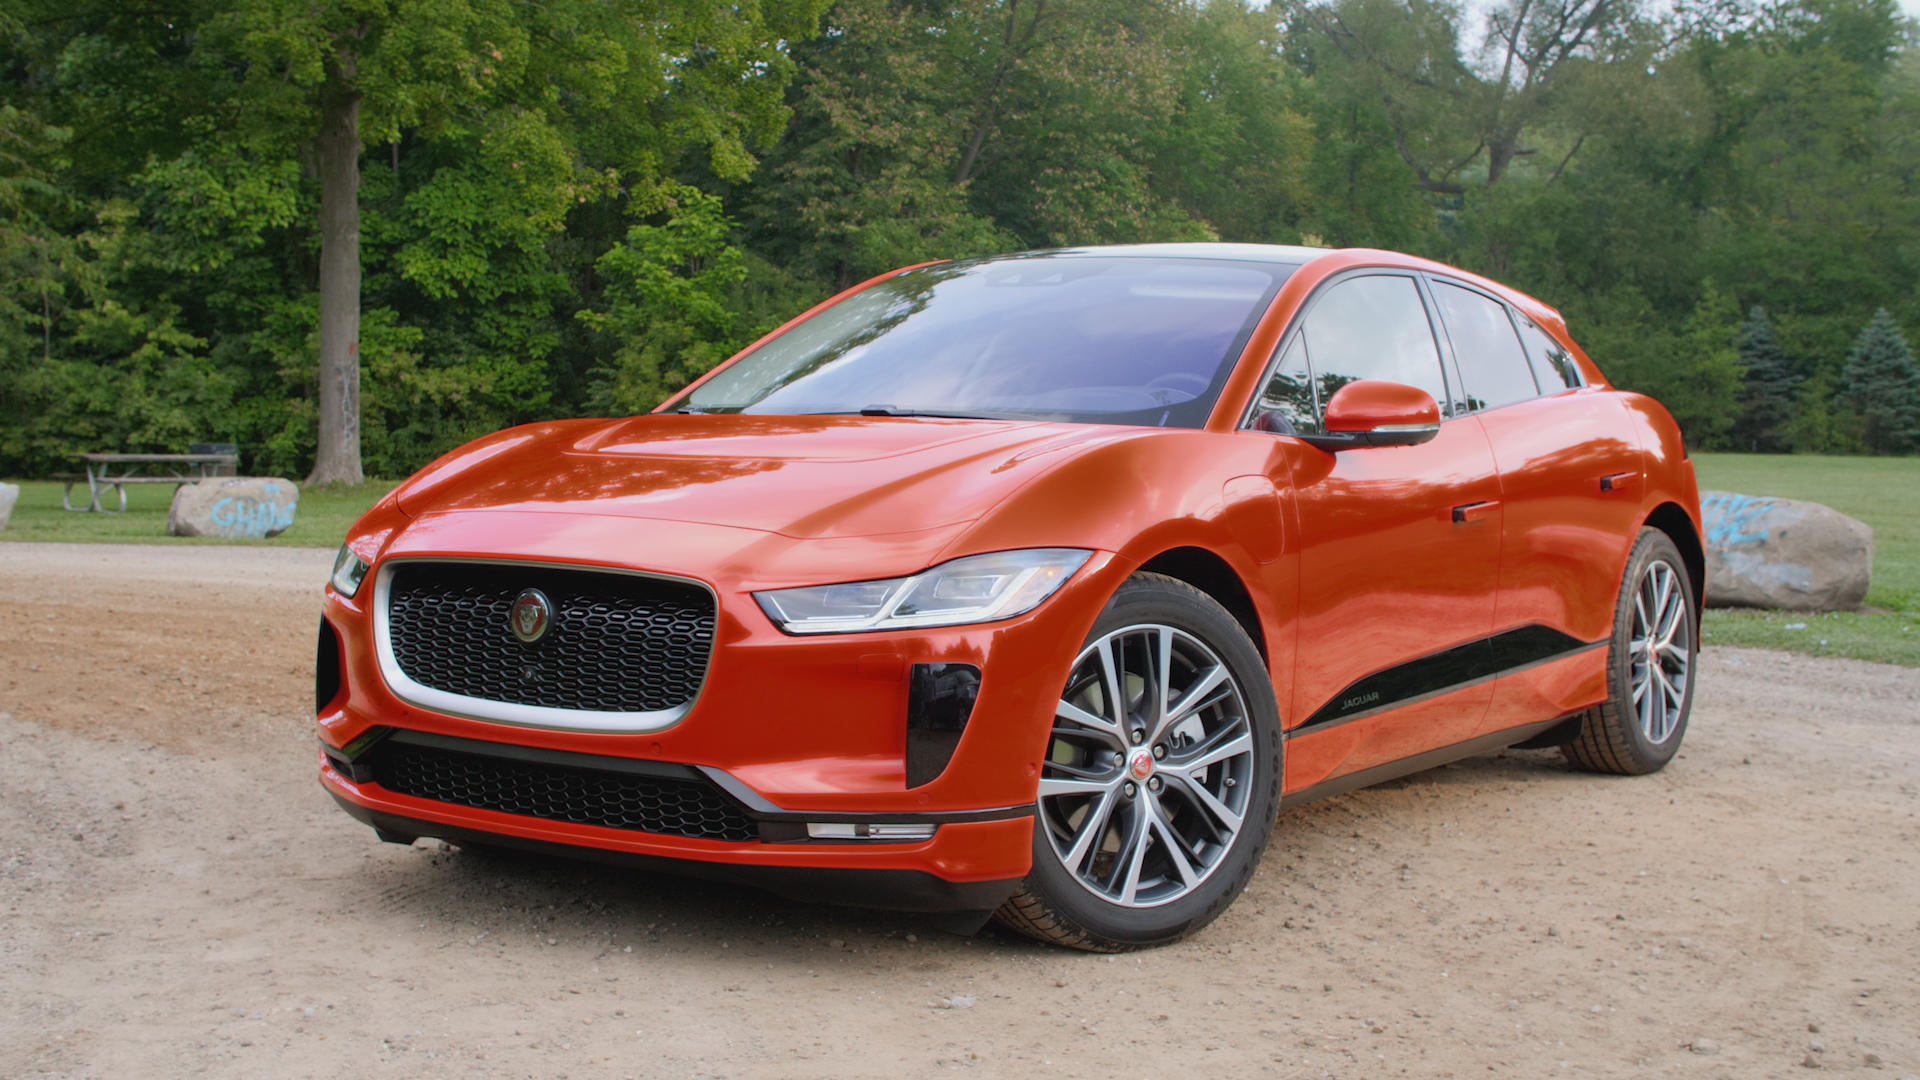 Video: Five things you need to know about the 2019 Jaguar I-Pace